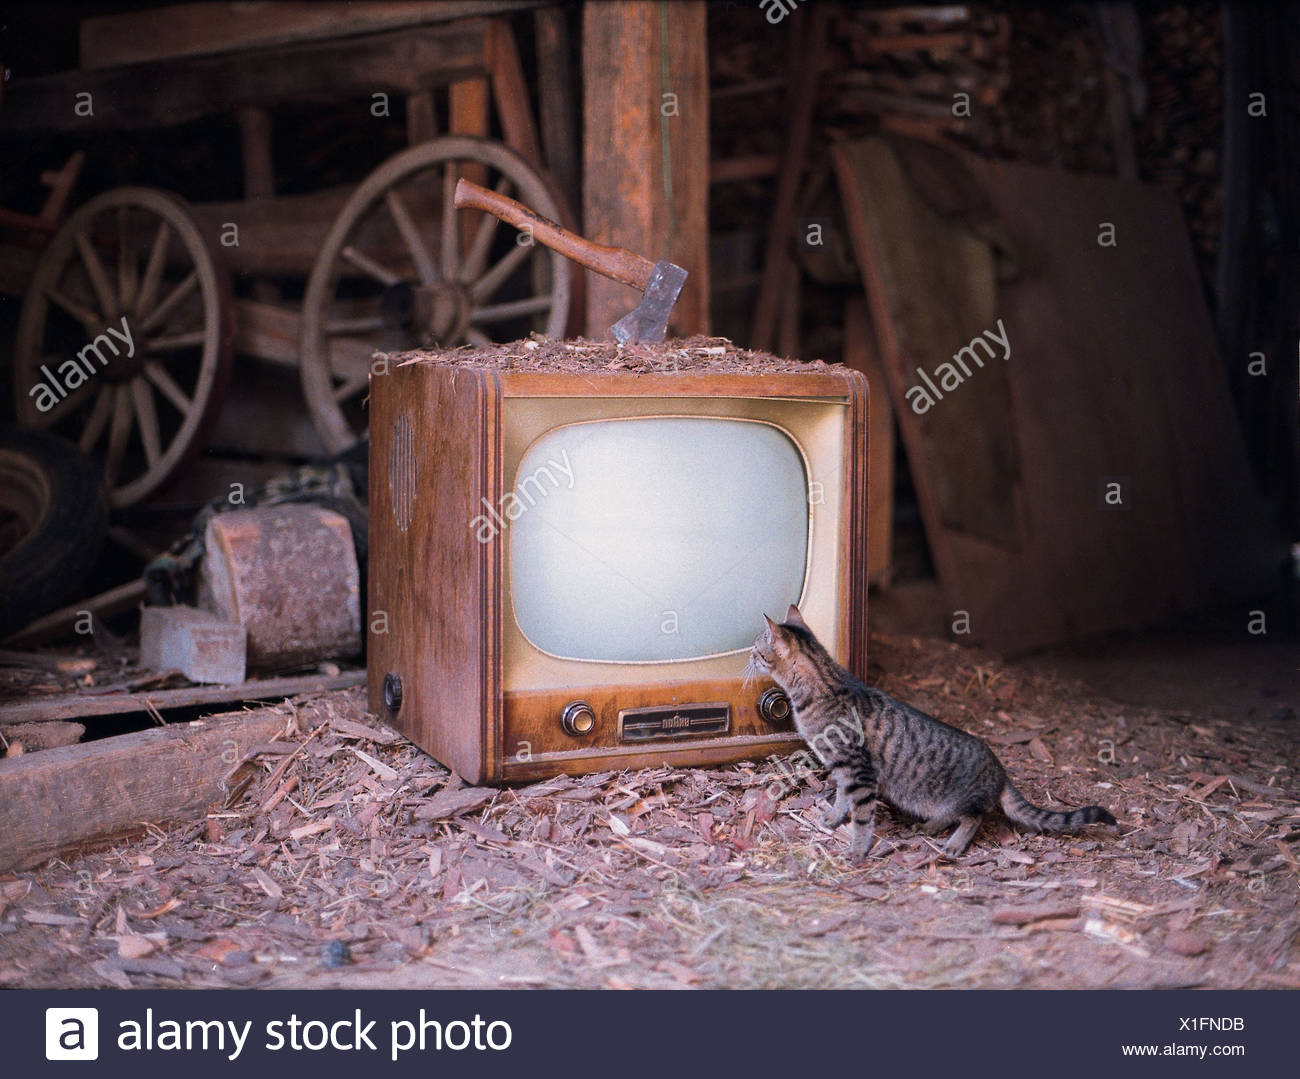 Consumer Unit Stock Photos Images Alamy History House Fuse Box Broadcast Television Set Stored In A Barn Curious Cat Is Watching At